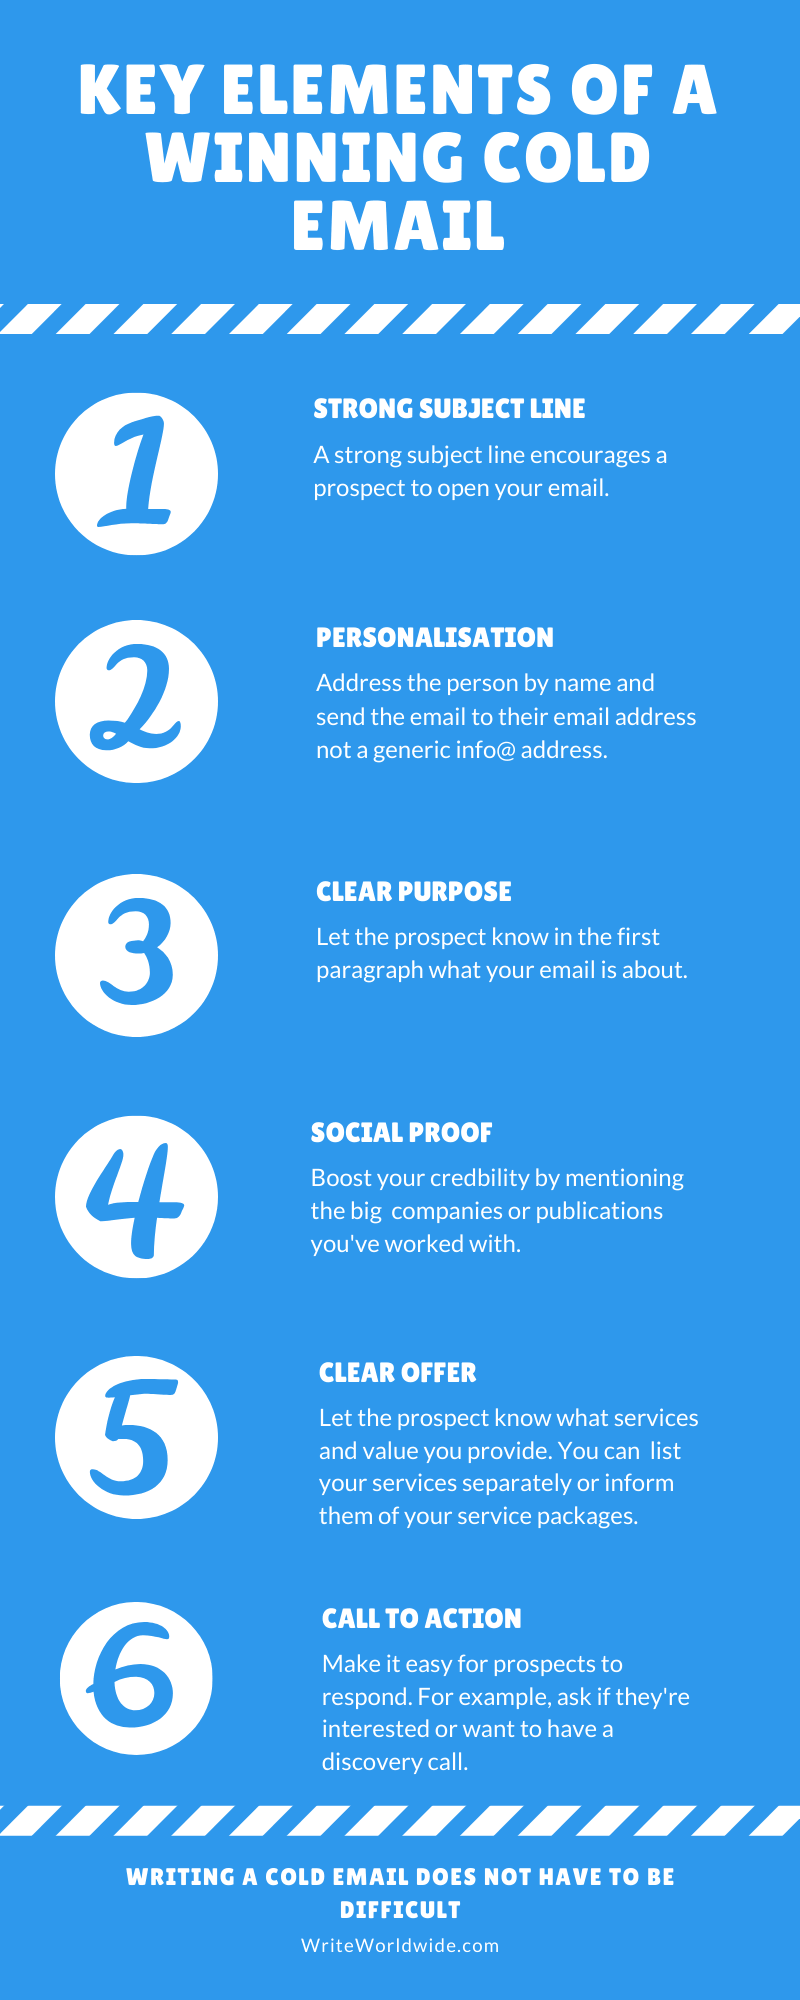 Key Elements of a Winning Cold Email Final Final